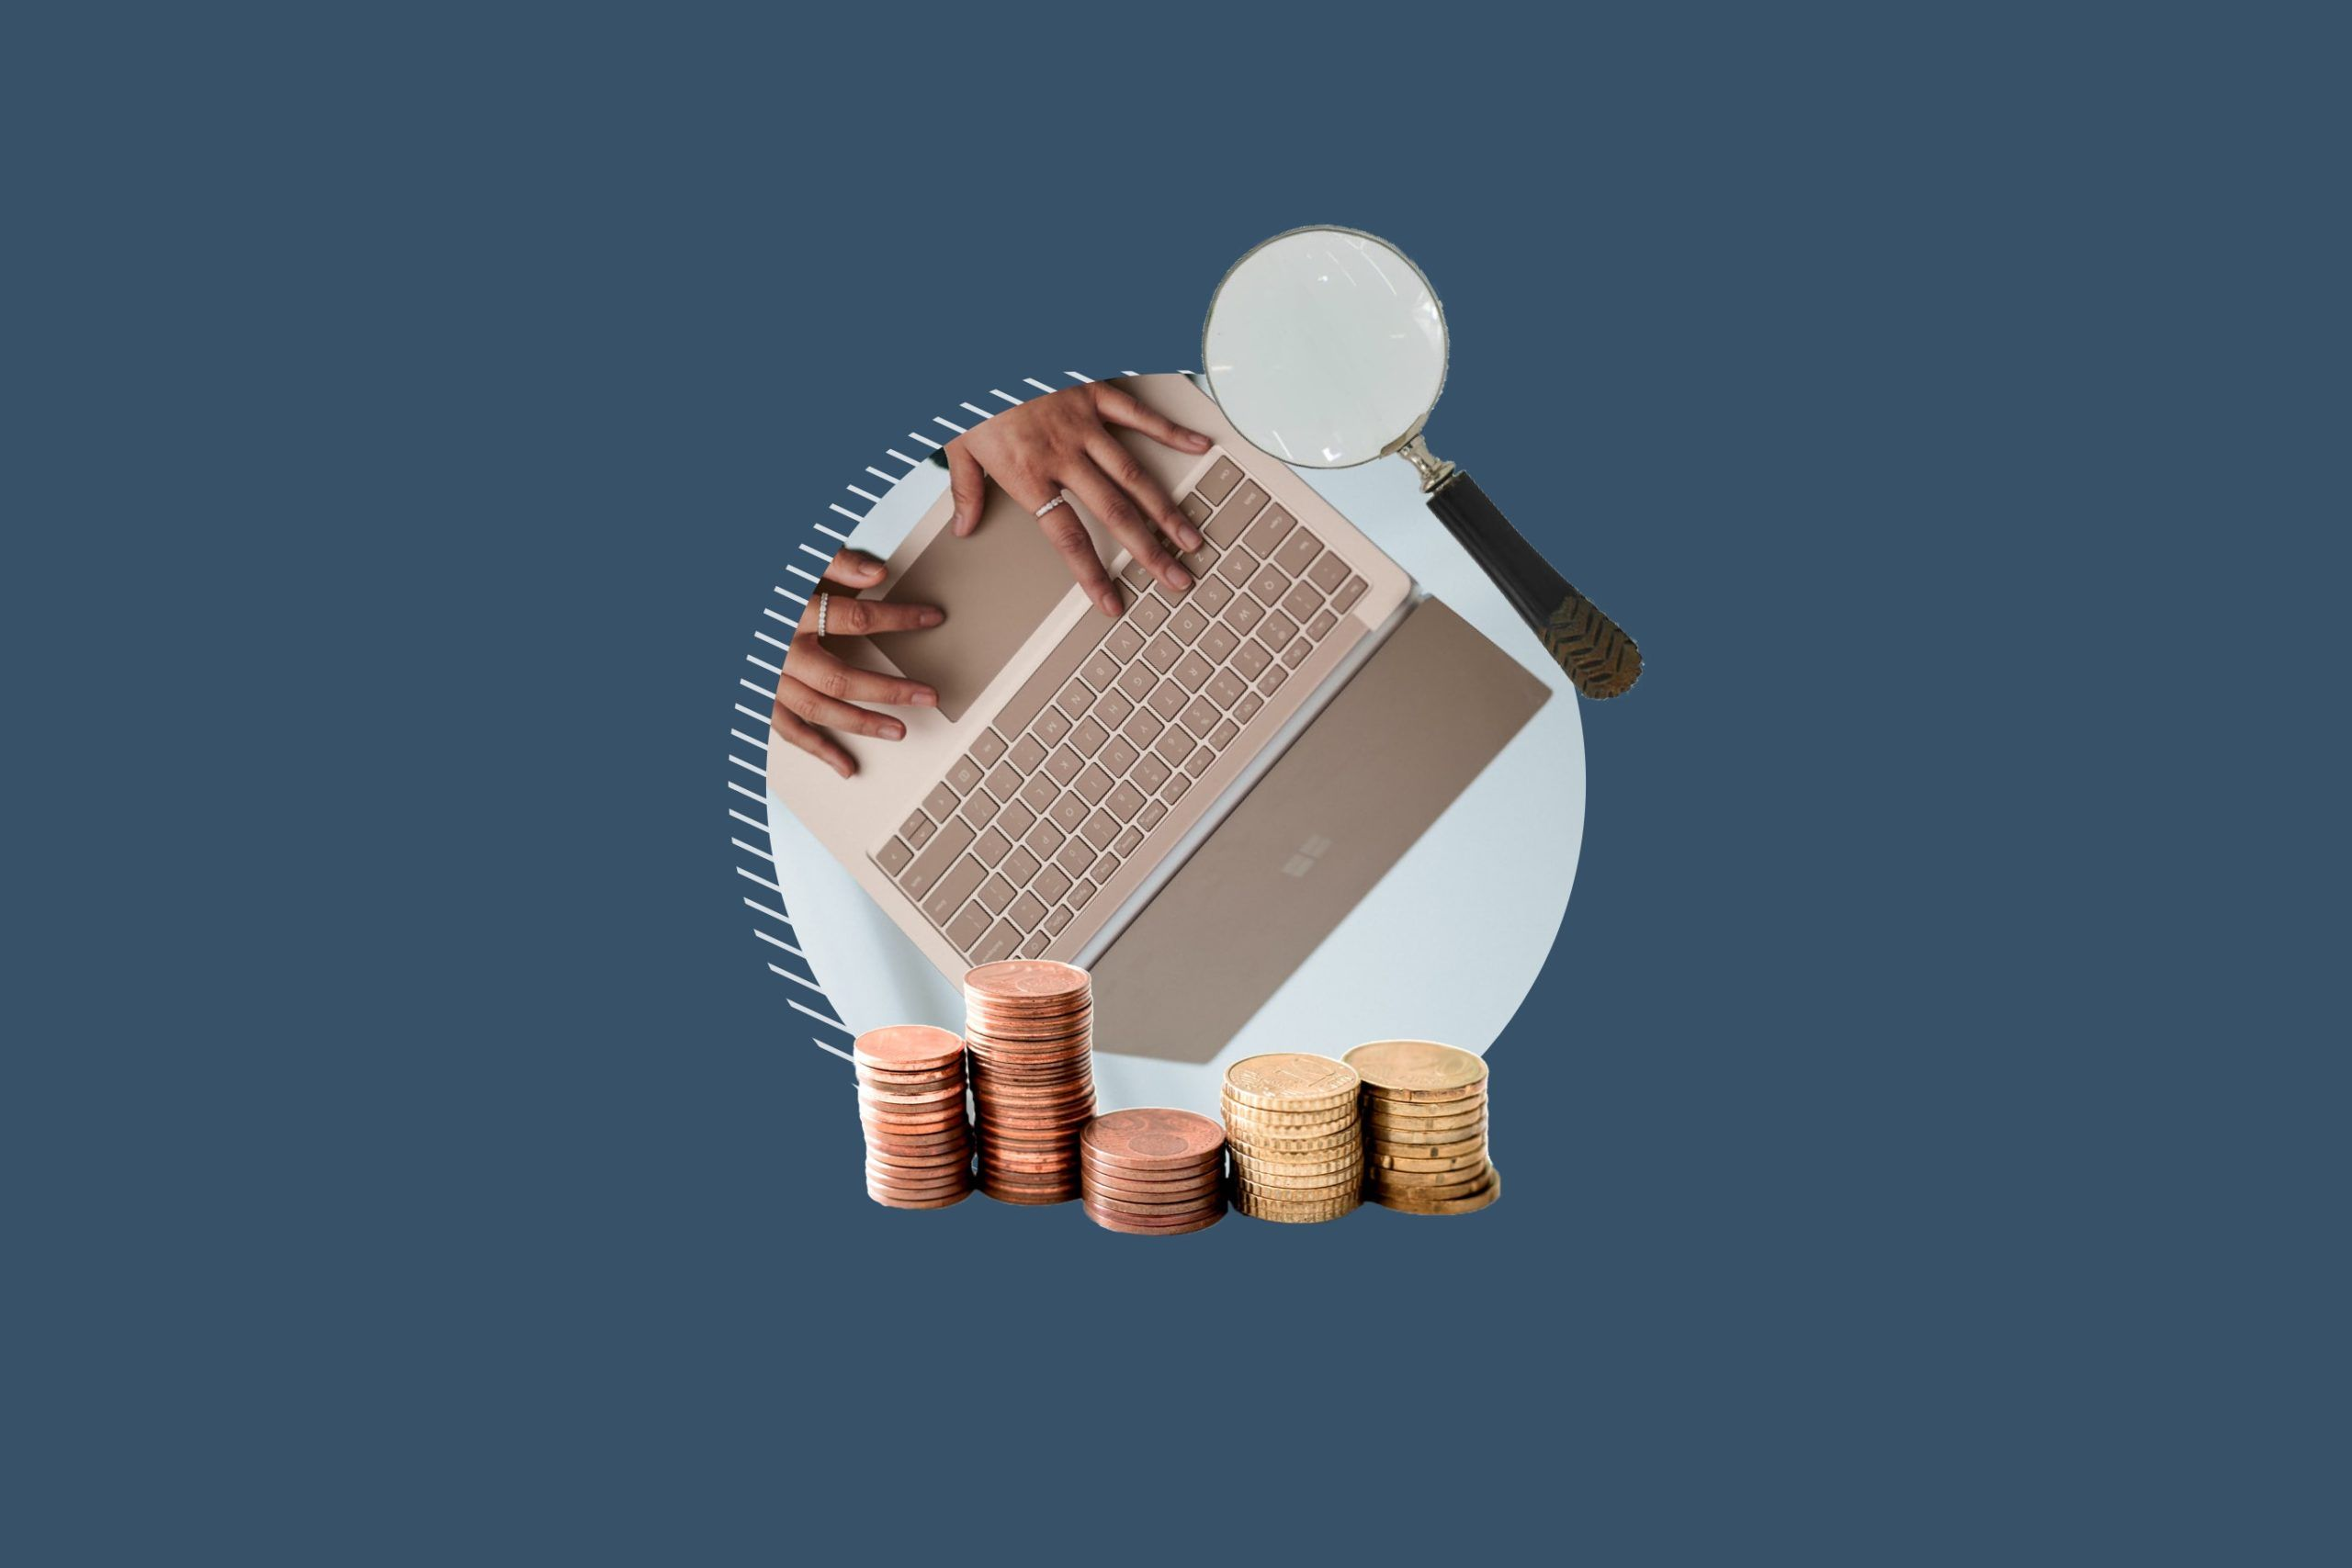 Featured image for the blog showing a laptop with a magnifying glass and stacks of coins